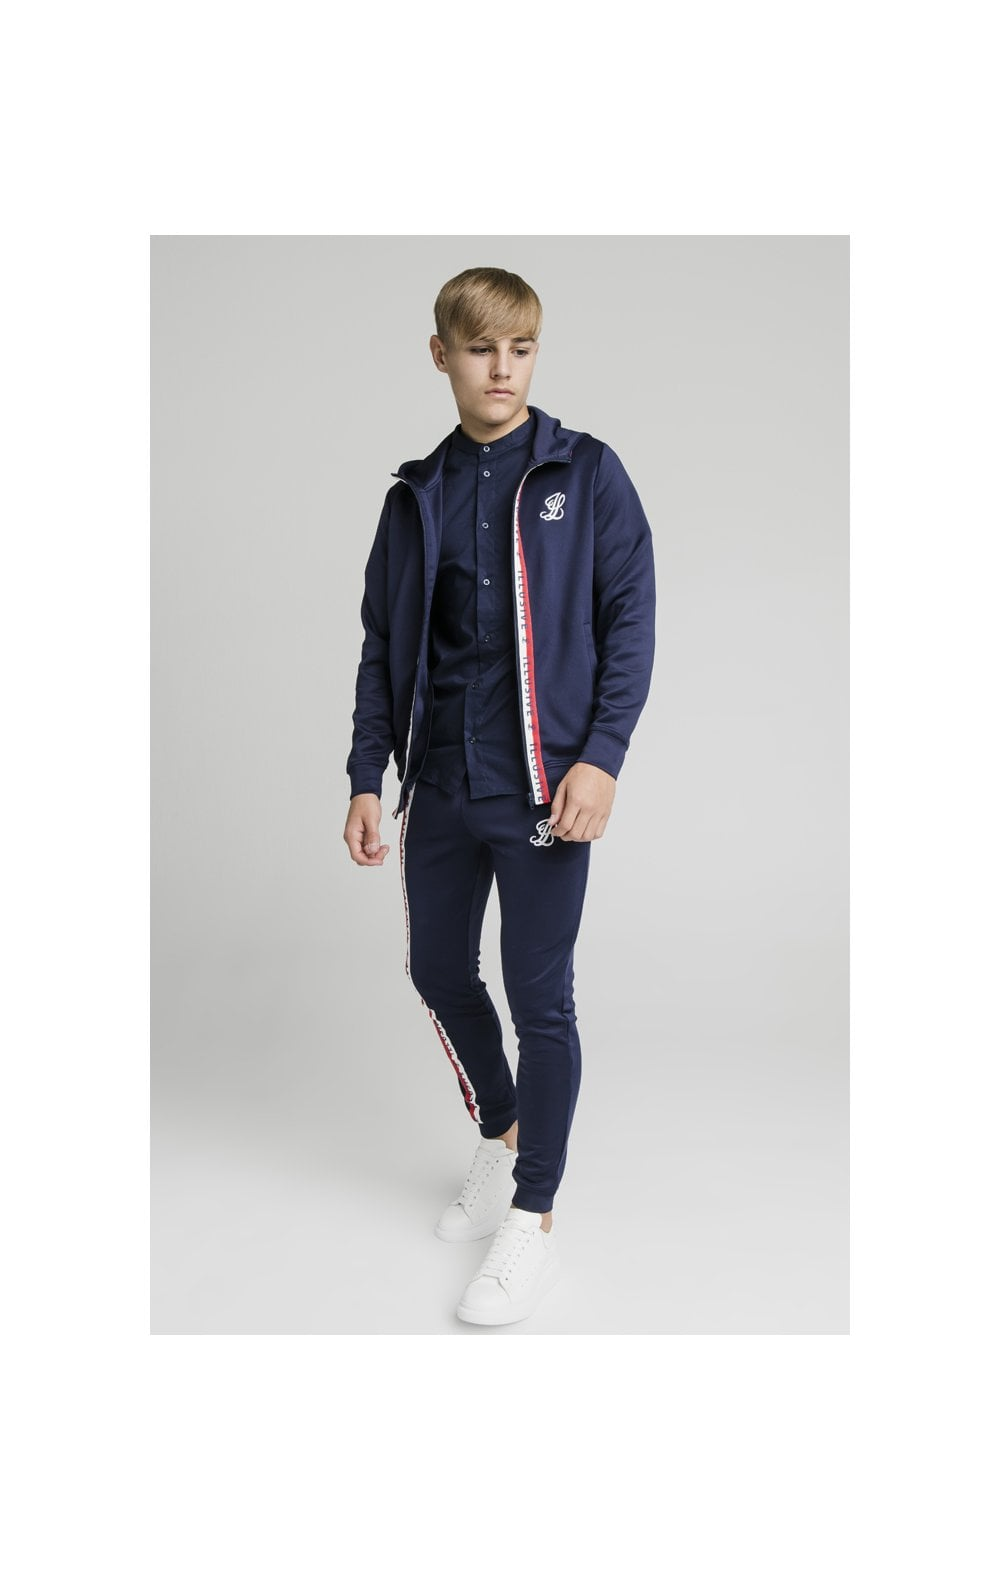 Illusive London Central Tape Zip Through Hoodie - Navy (6)